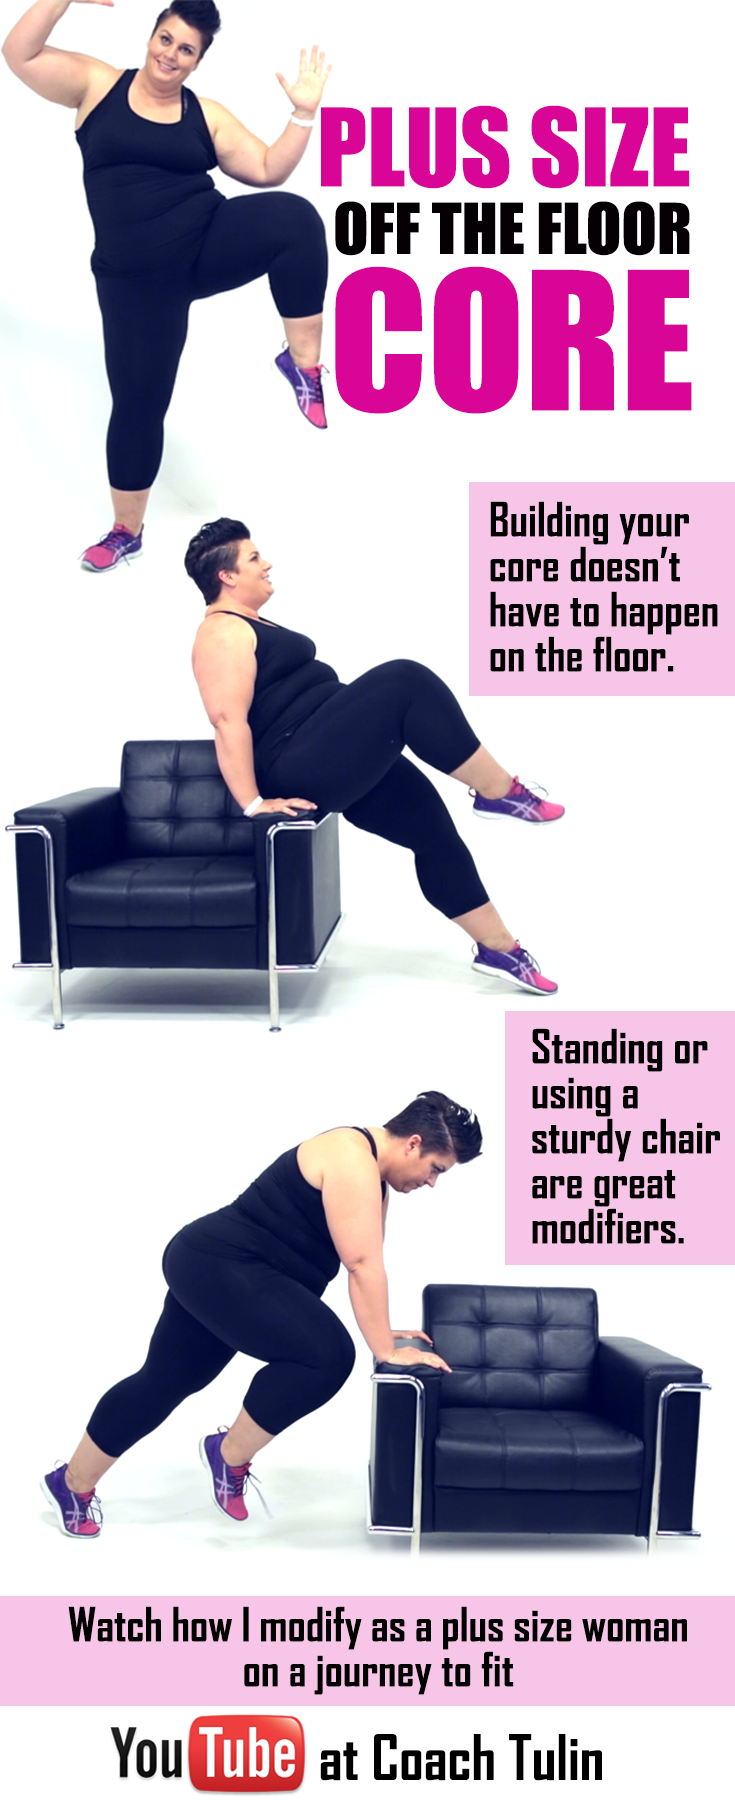 Plus size core exercises that does not require getting up